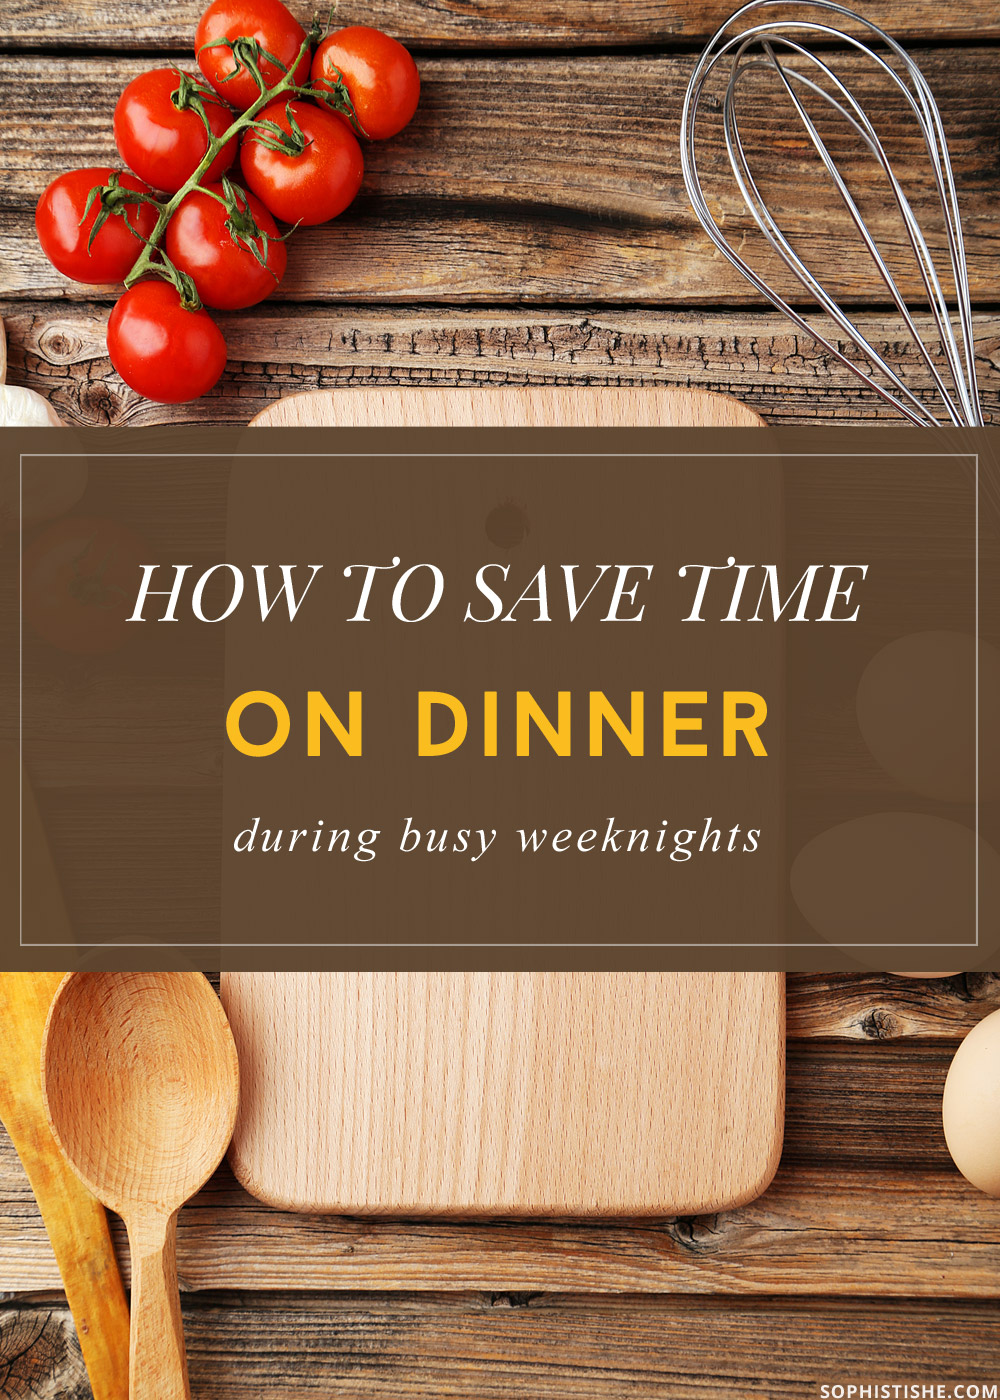 How to Save Time on Dinner During Busy Weeknights @Sophistishe